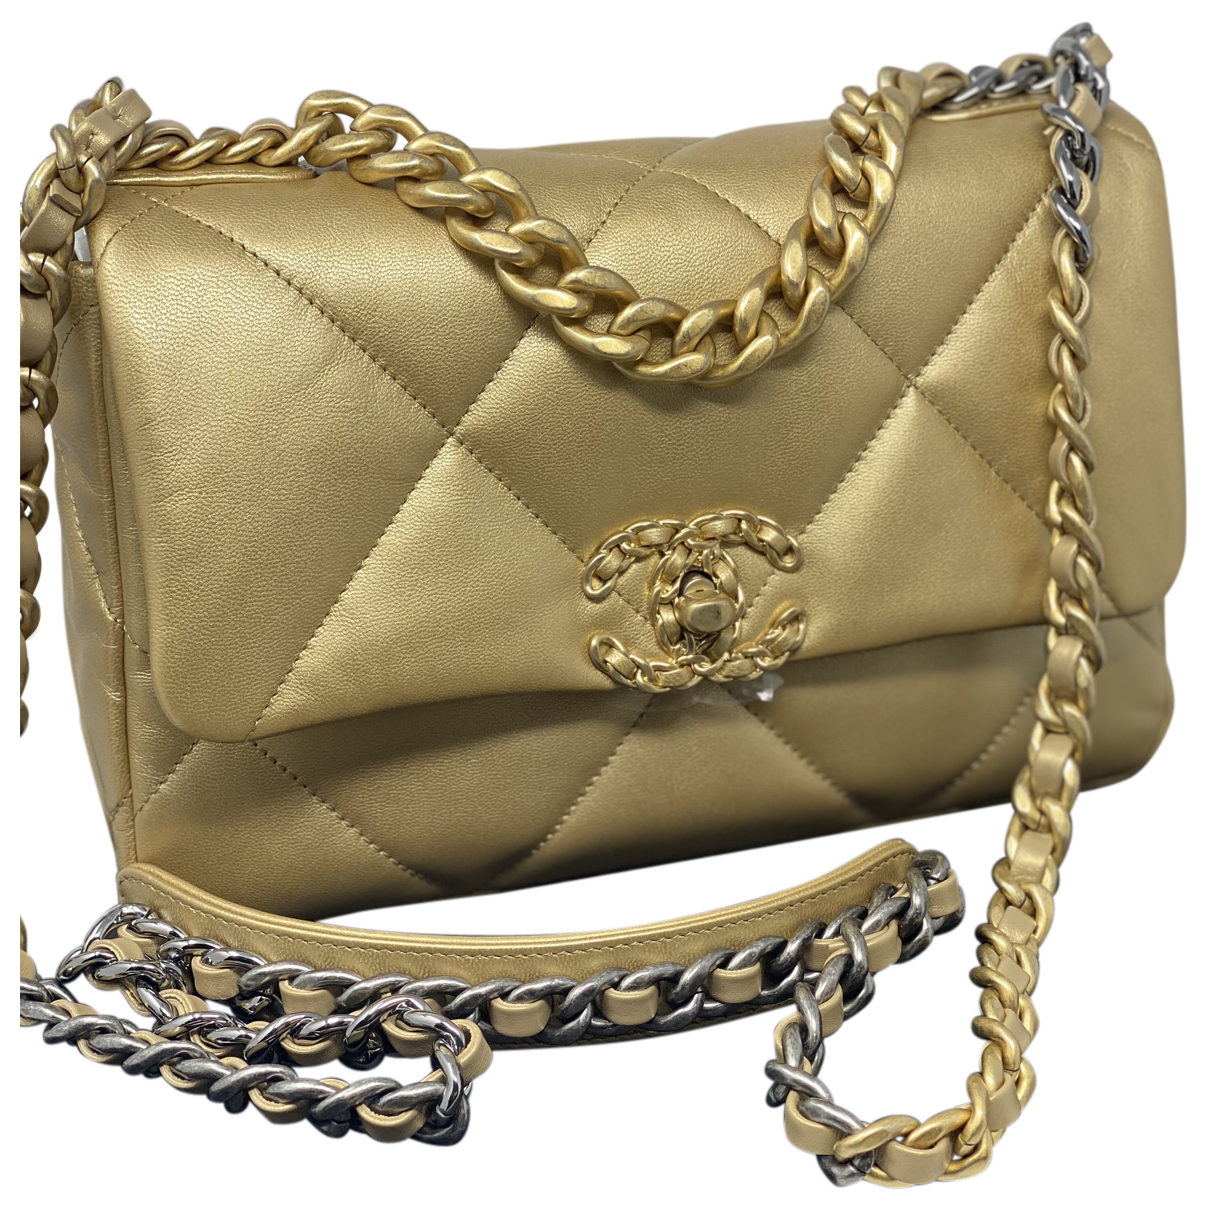 Chanel Chanel 19 Gold Leather handbag for Women N